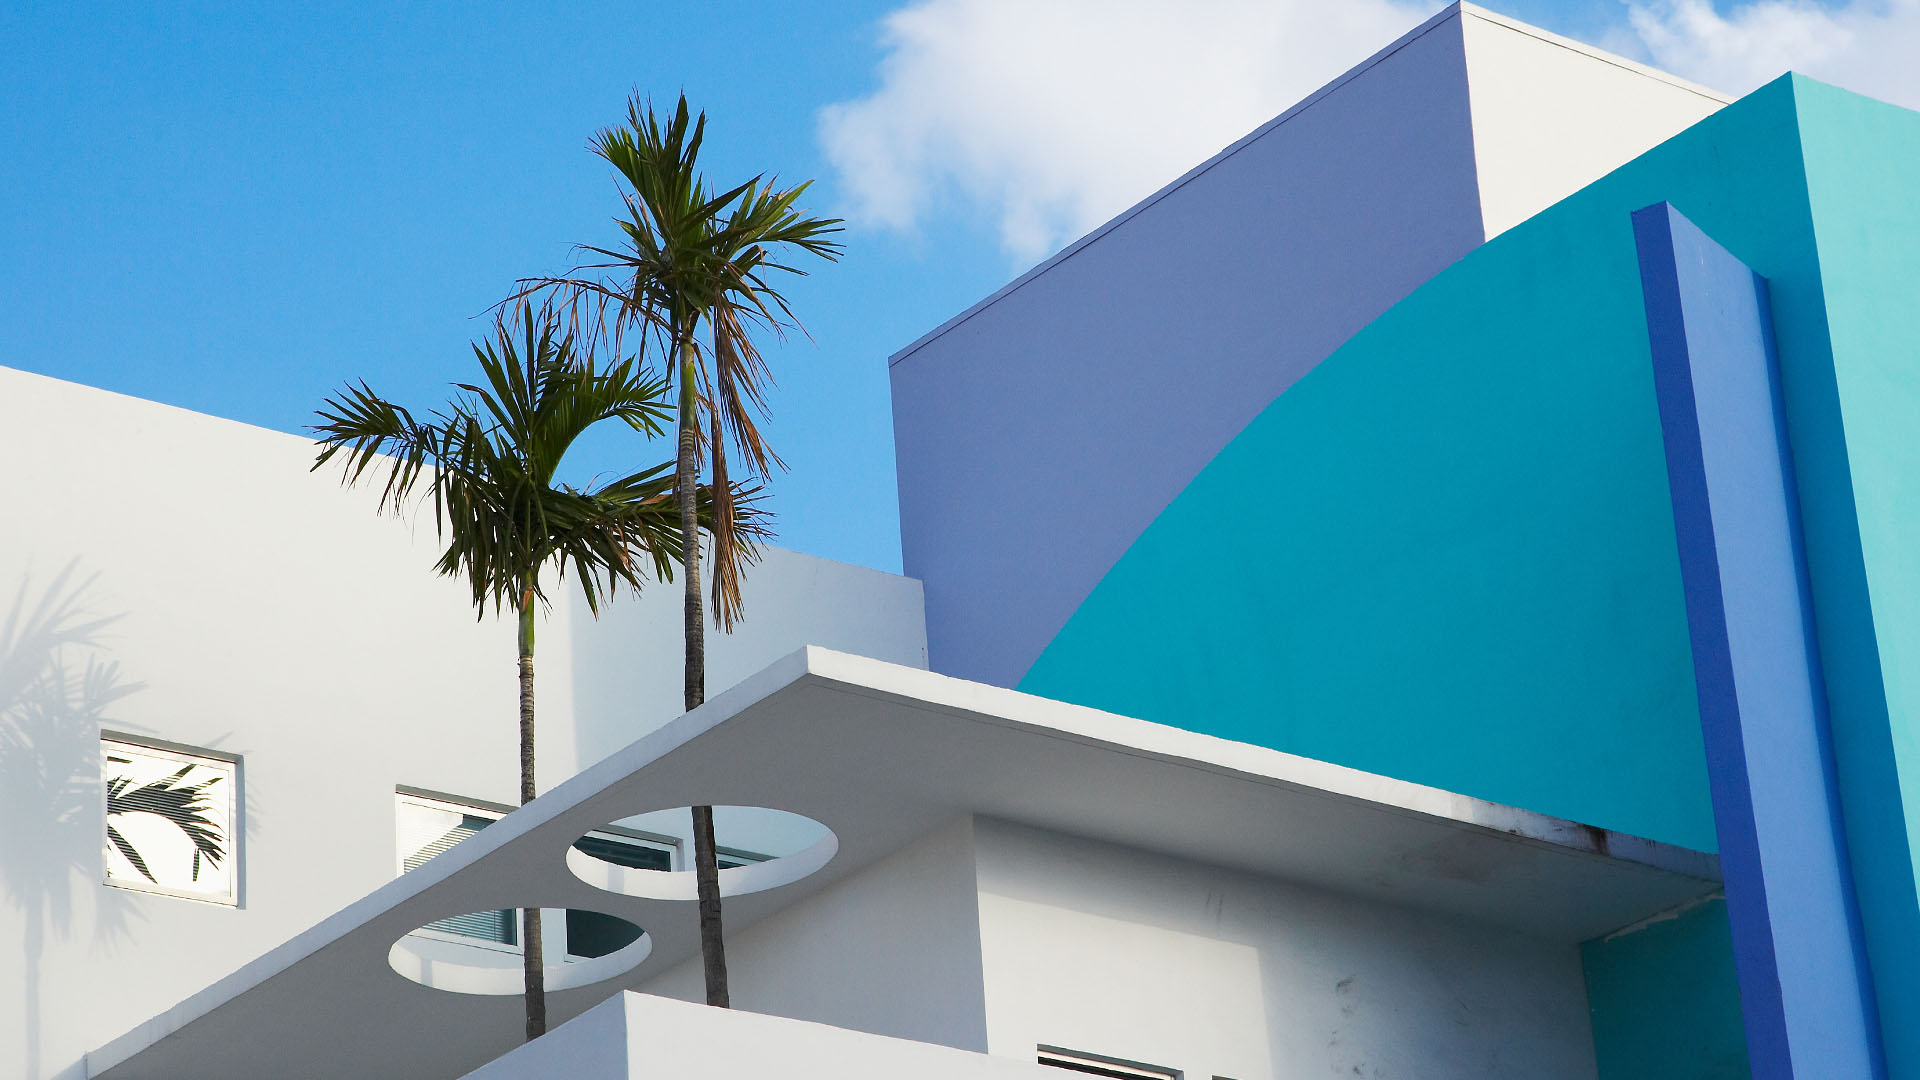 abstract view of art deco building with palm tree